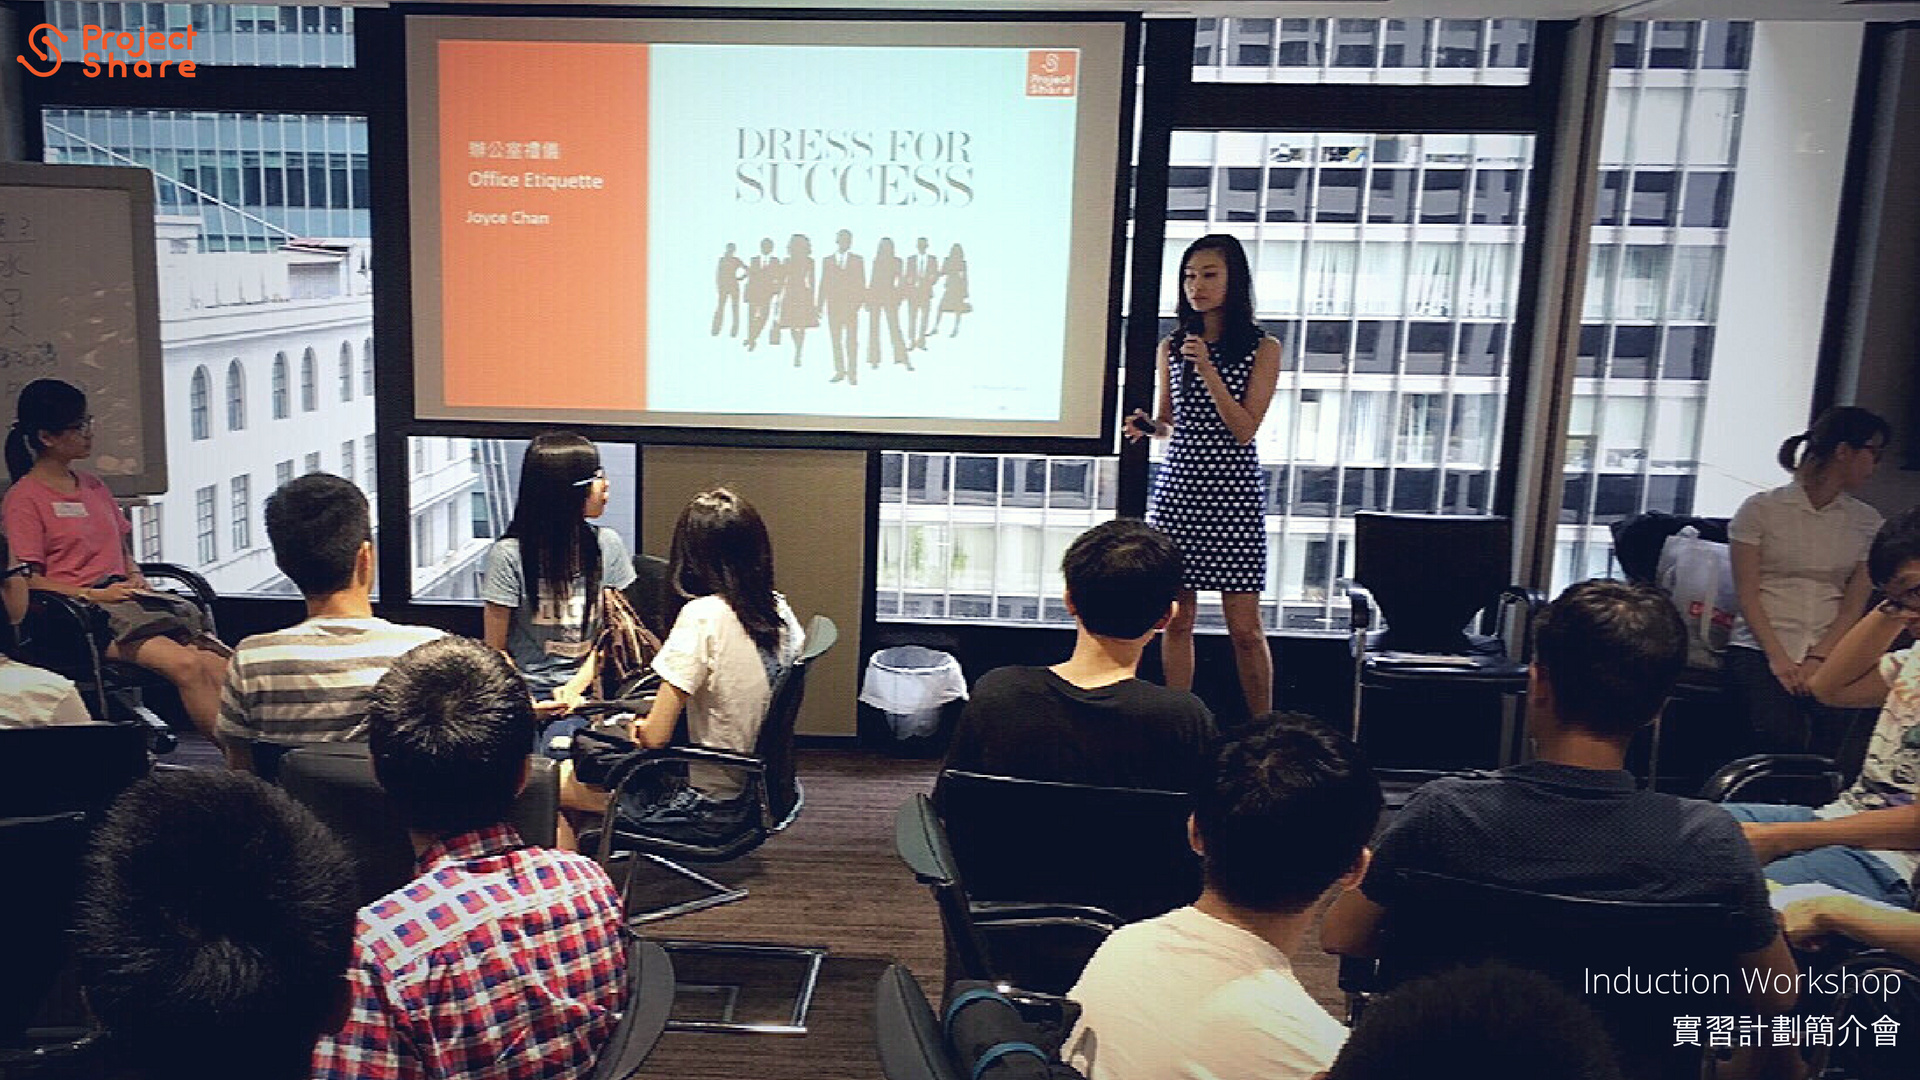 Speaker explains the right dress code for the workplace in induction workshop.